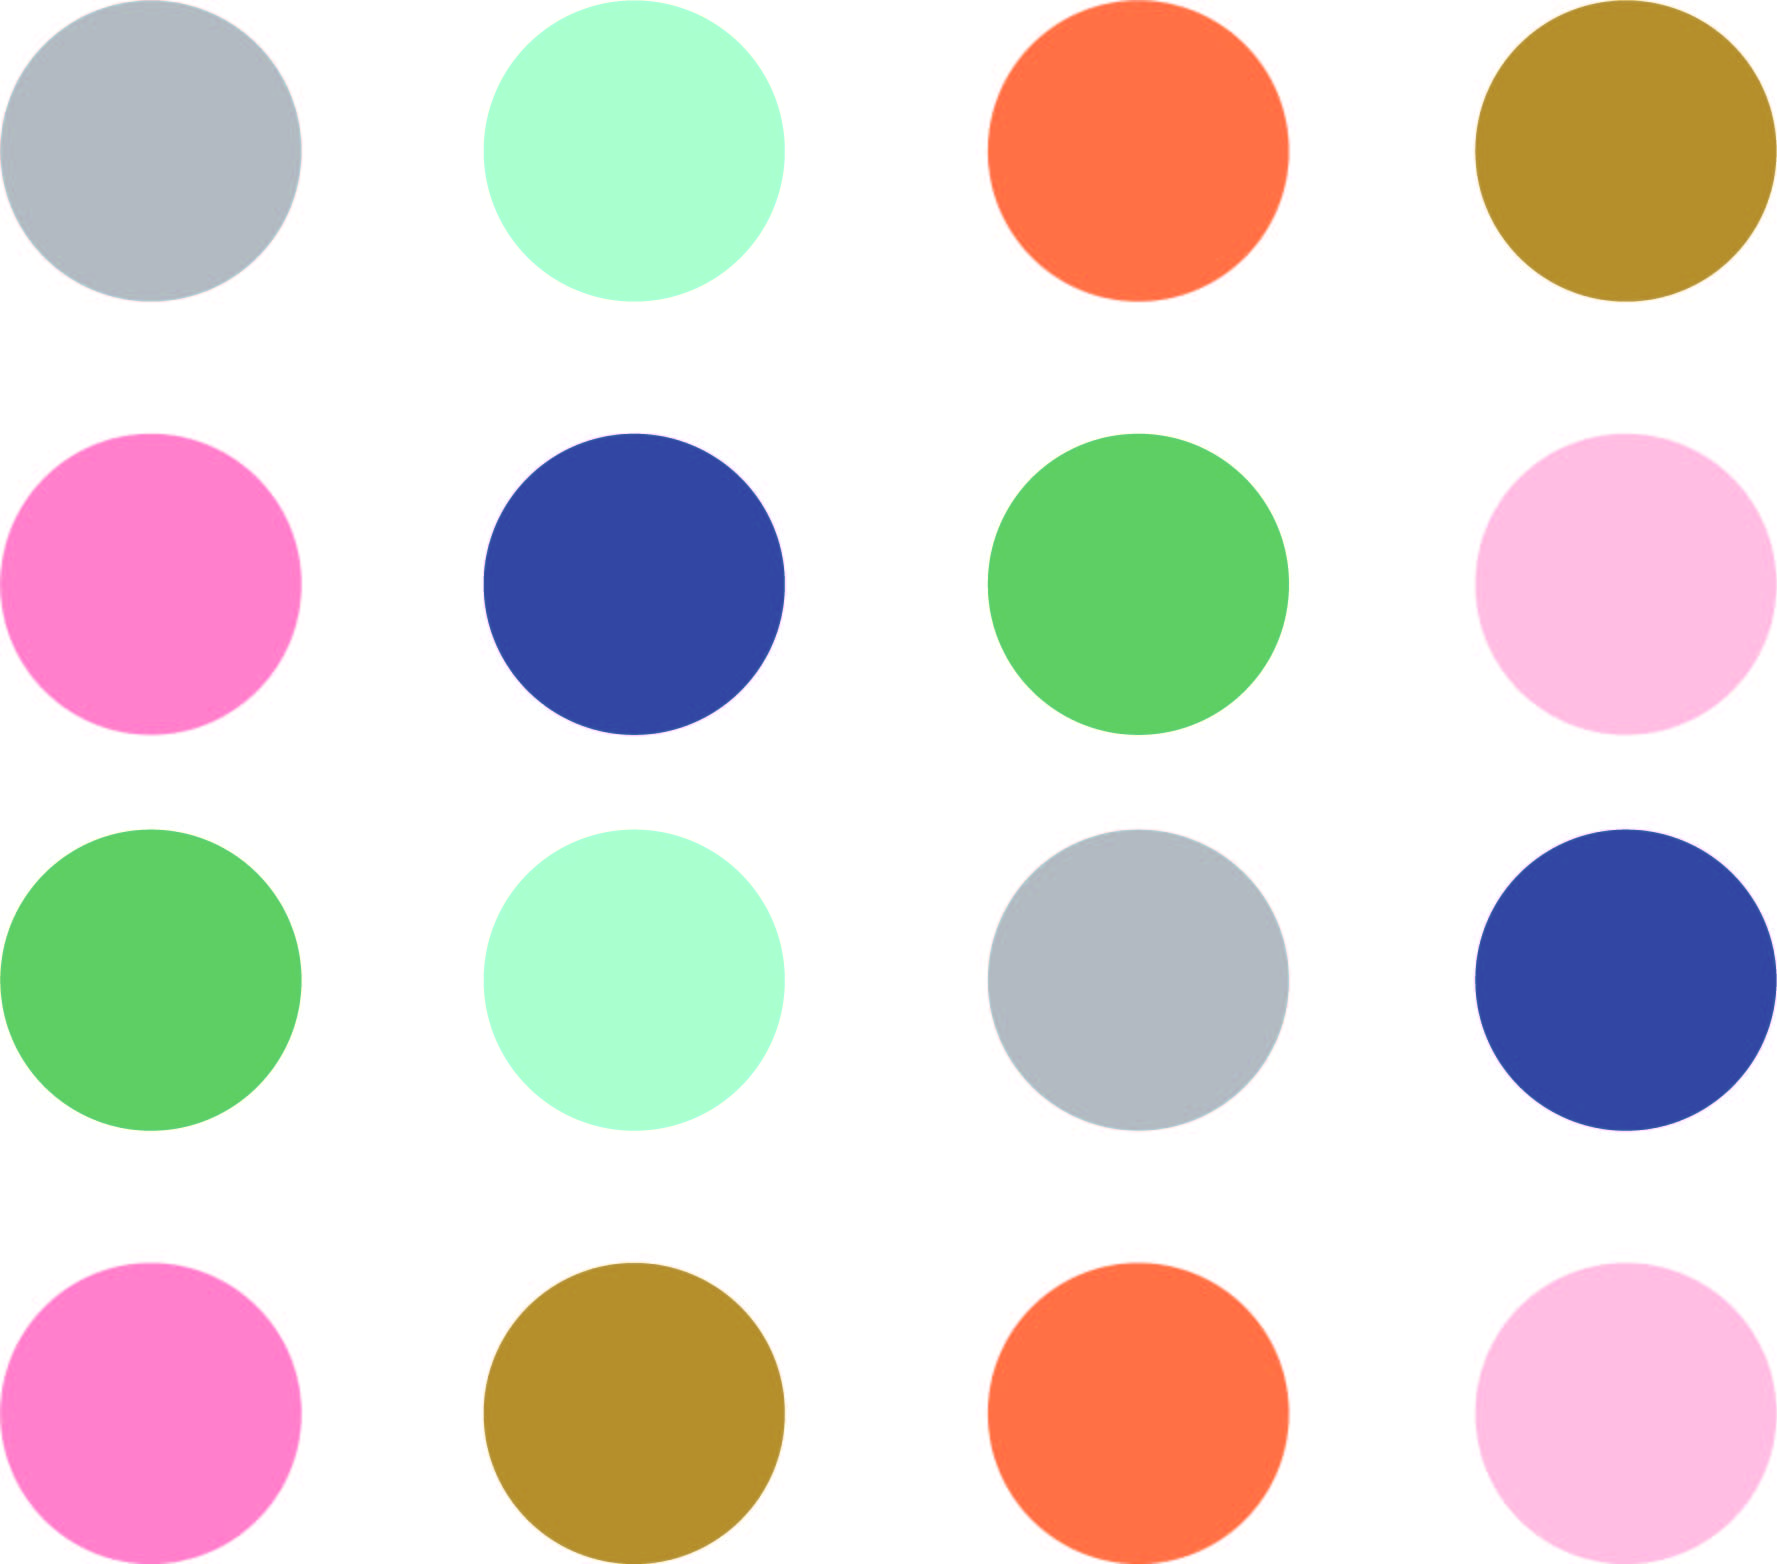 dots for instagram.jpg